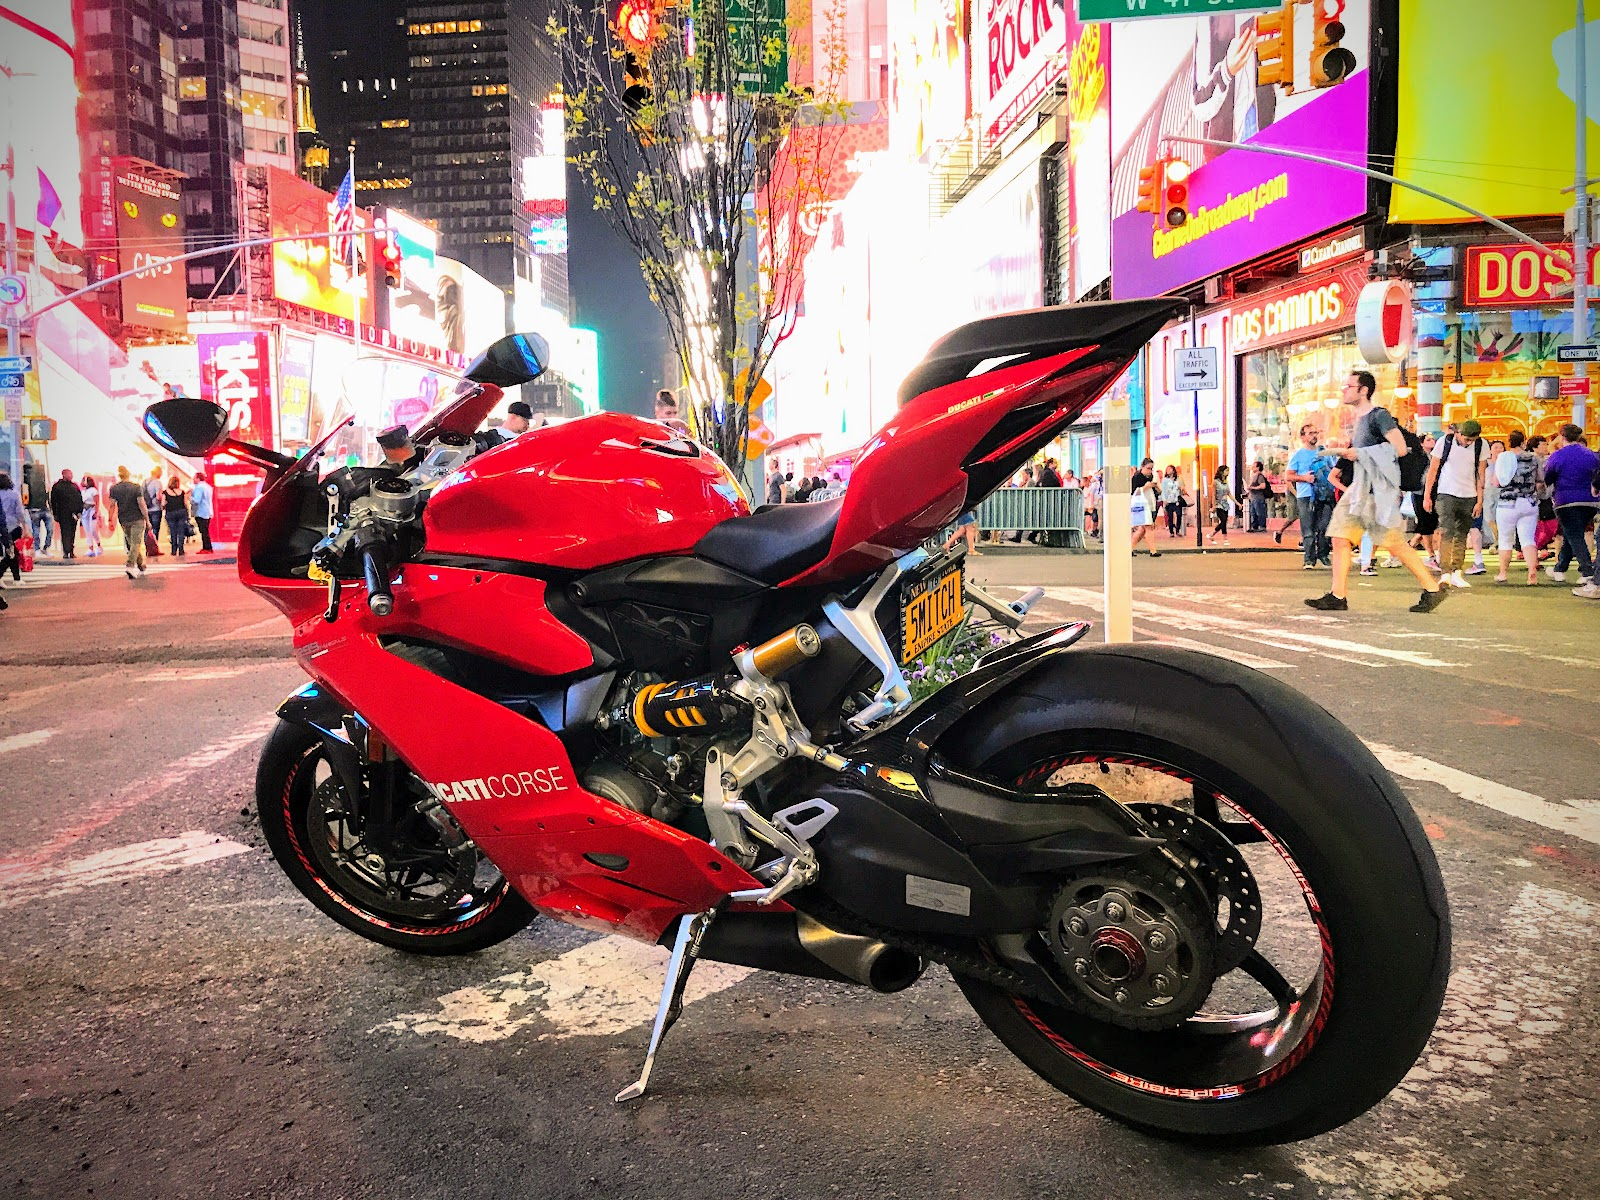 Ducati Owners Club Broadway New York City